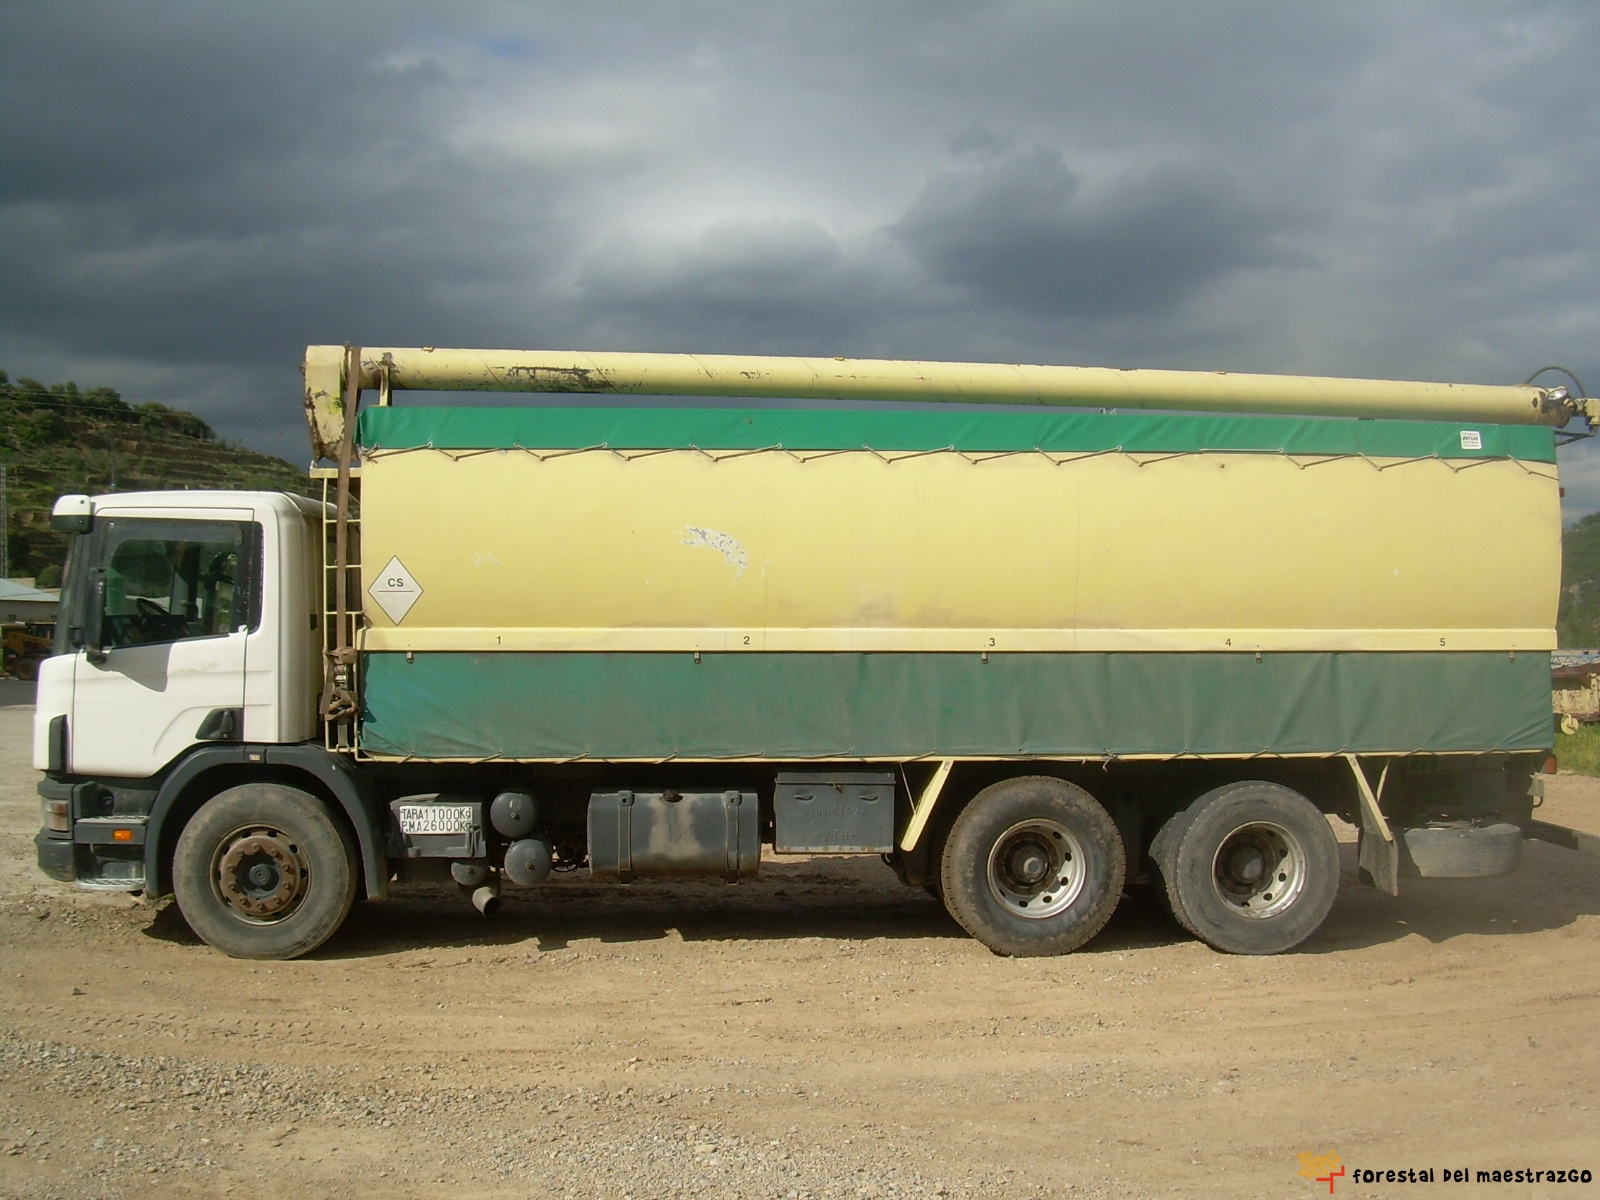 Camion 002